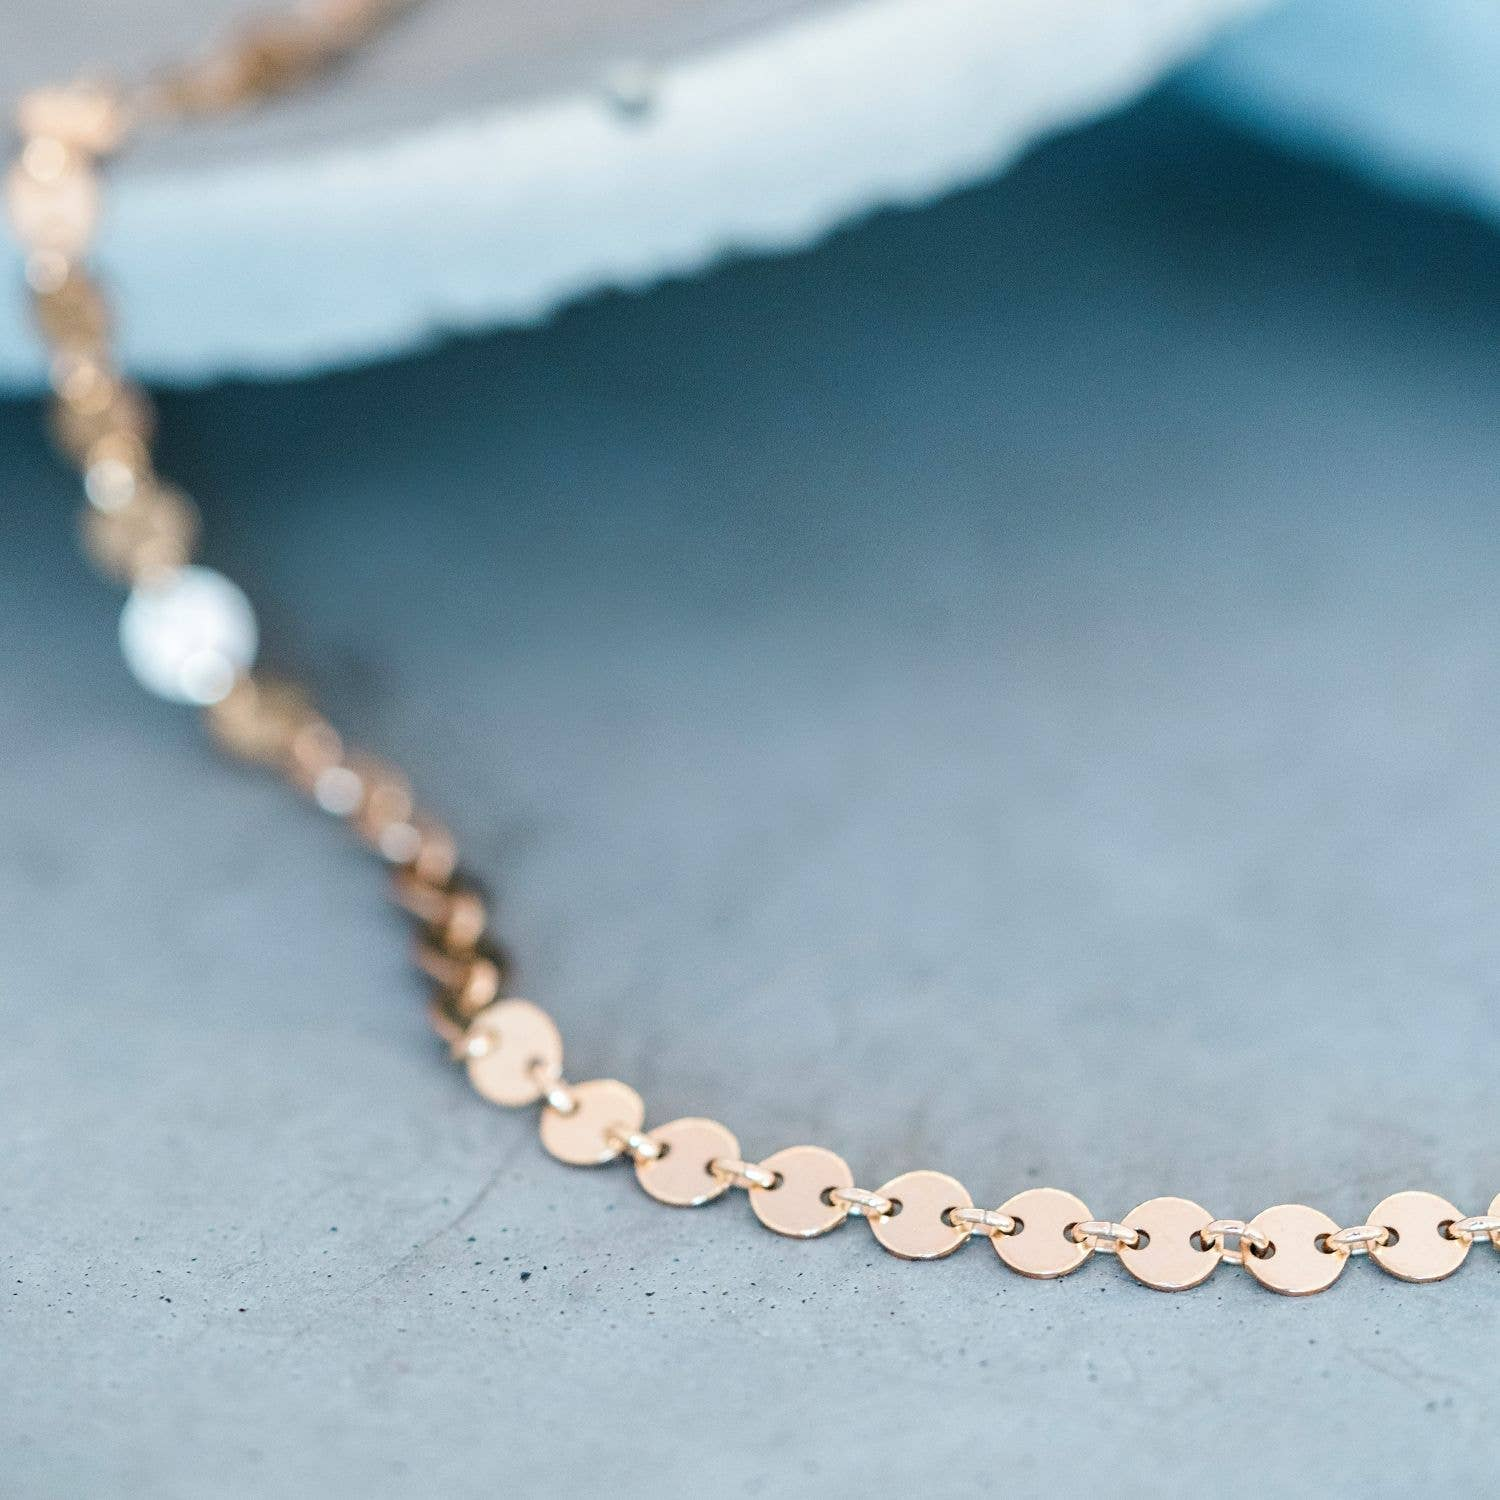 14kt gold filled Coin Anklet